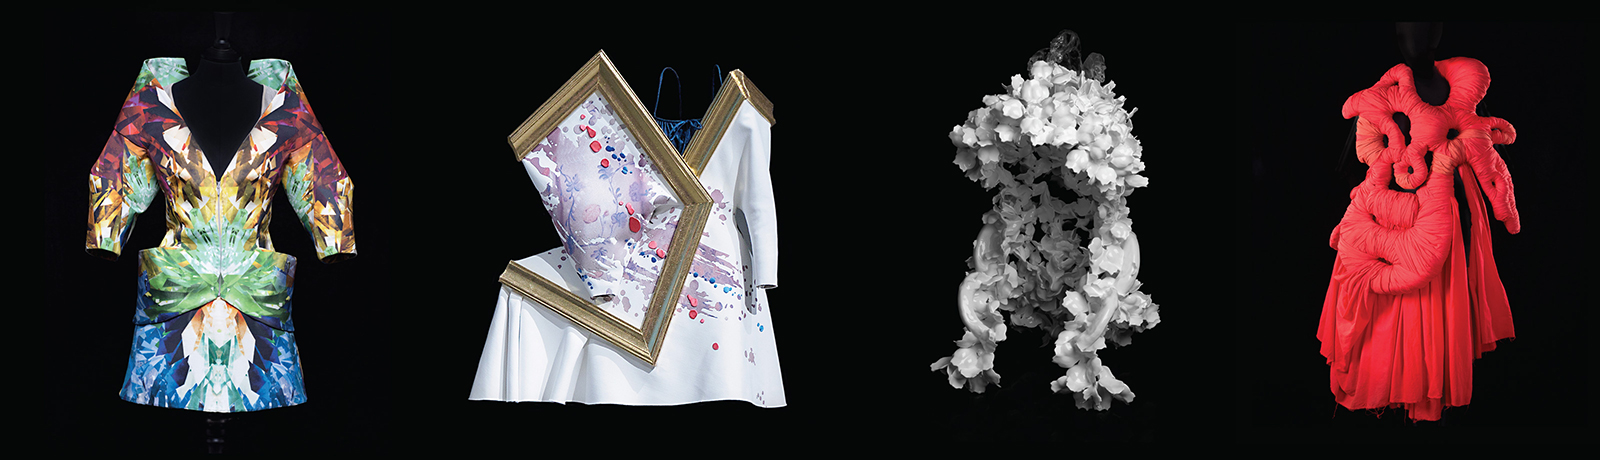 Alexander McQueen, Iris van Herpen, and Gucci are among the designers represented in NOMA's first fashion exhibition, on view through May 28th.